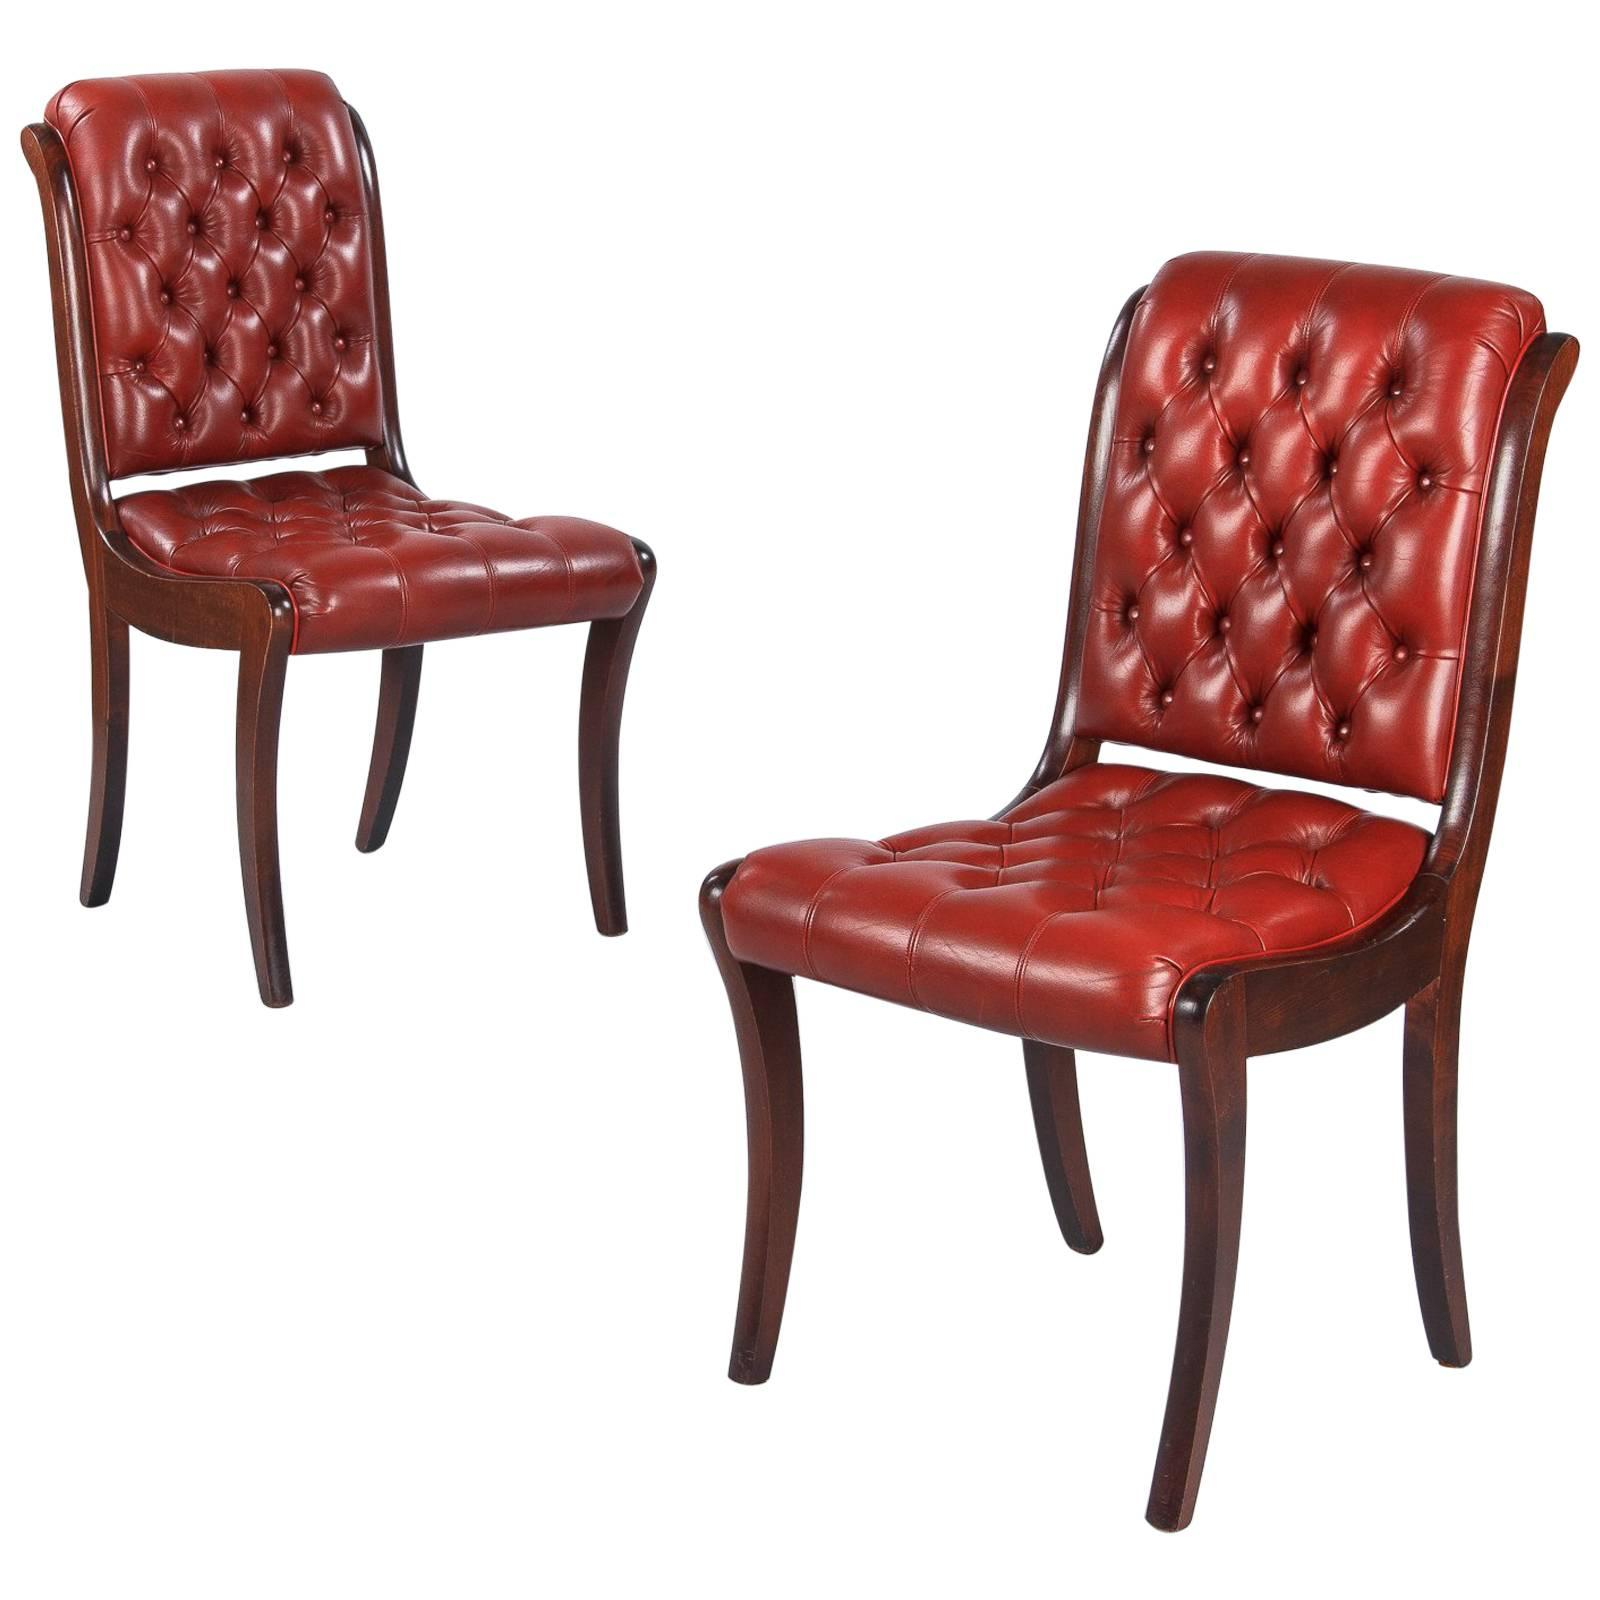 Pair Of English Mahogany And Red Tufted Leather Side Chairs, 1950s 1